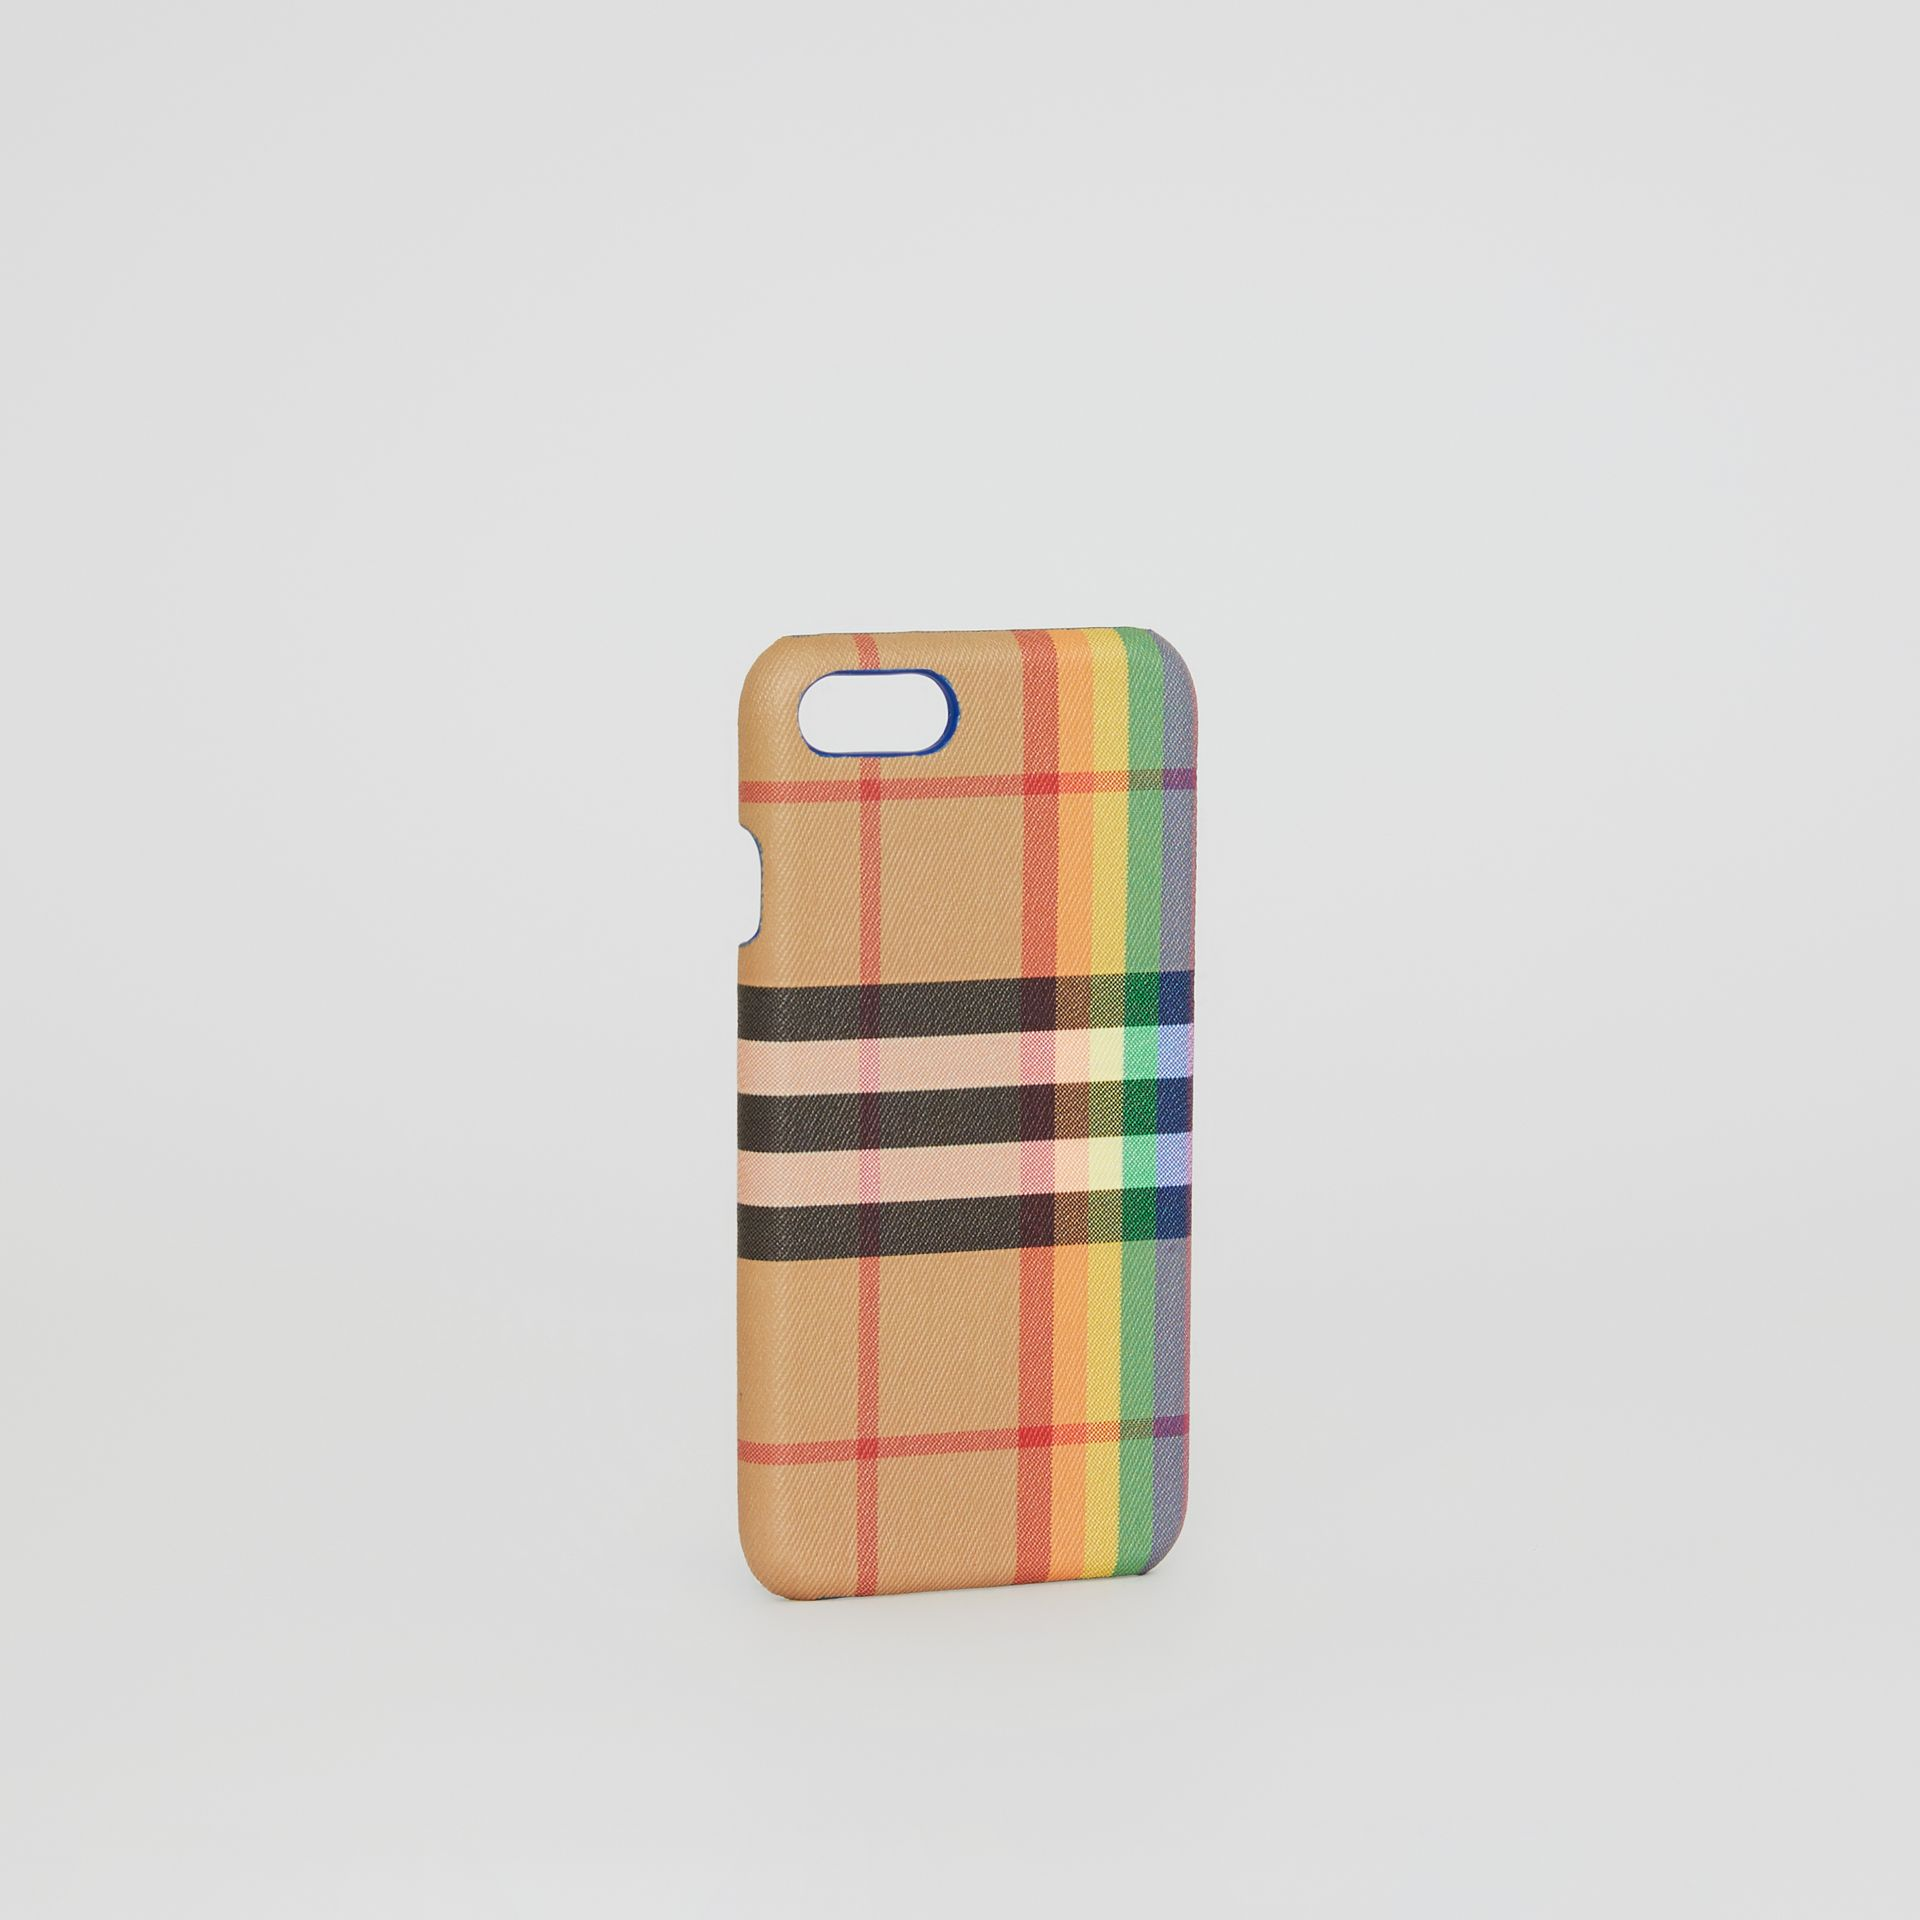 Custodia per iPhone 8 in pelle e motivo Rainbow vintage check (Multicolore/giallo Antico) | Burberry - immagine della galleria 3